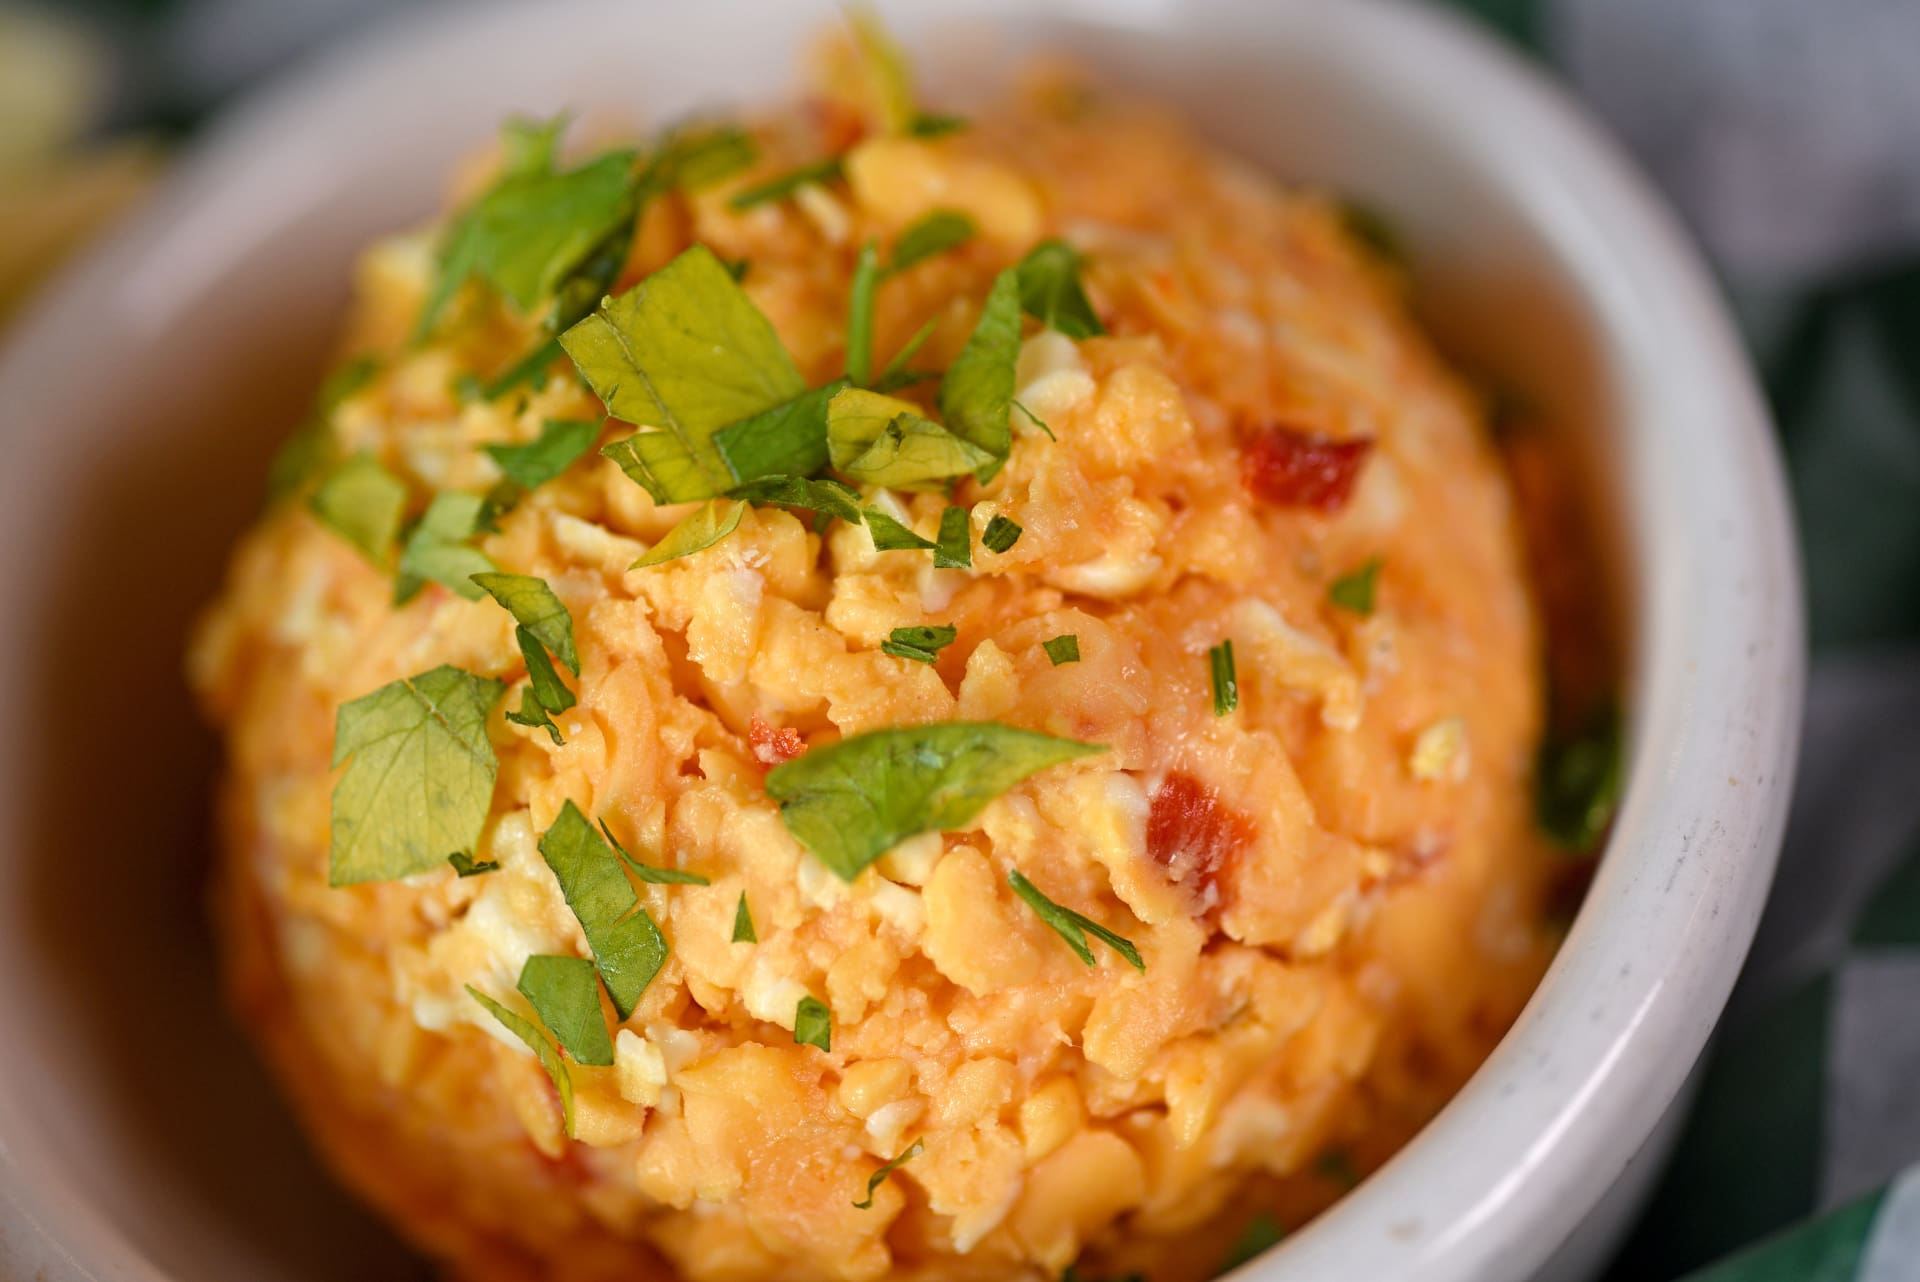 Art's Famous Pimento Cheese Spread